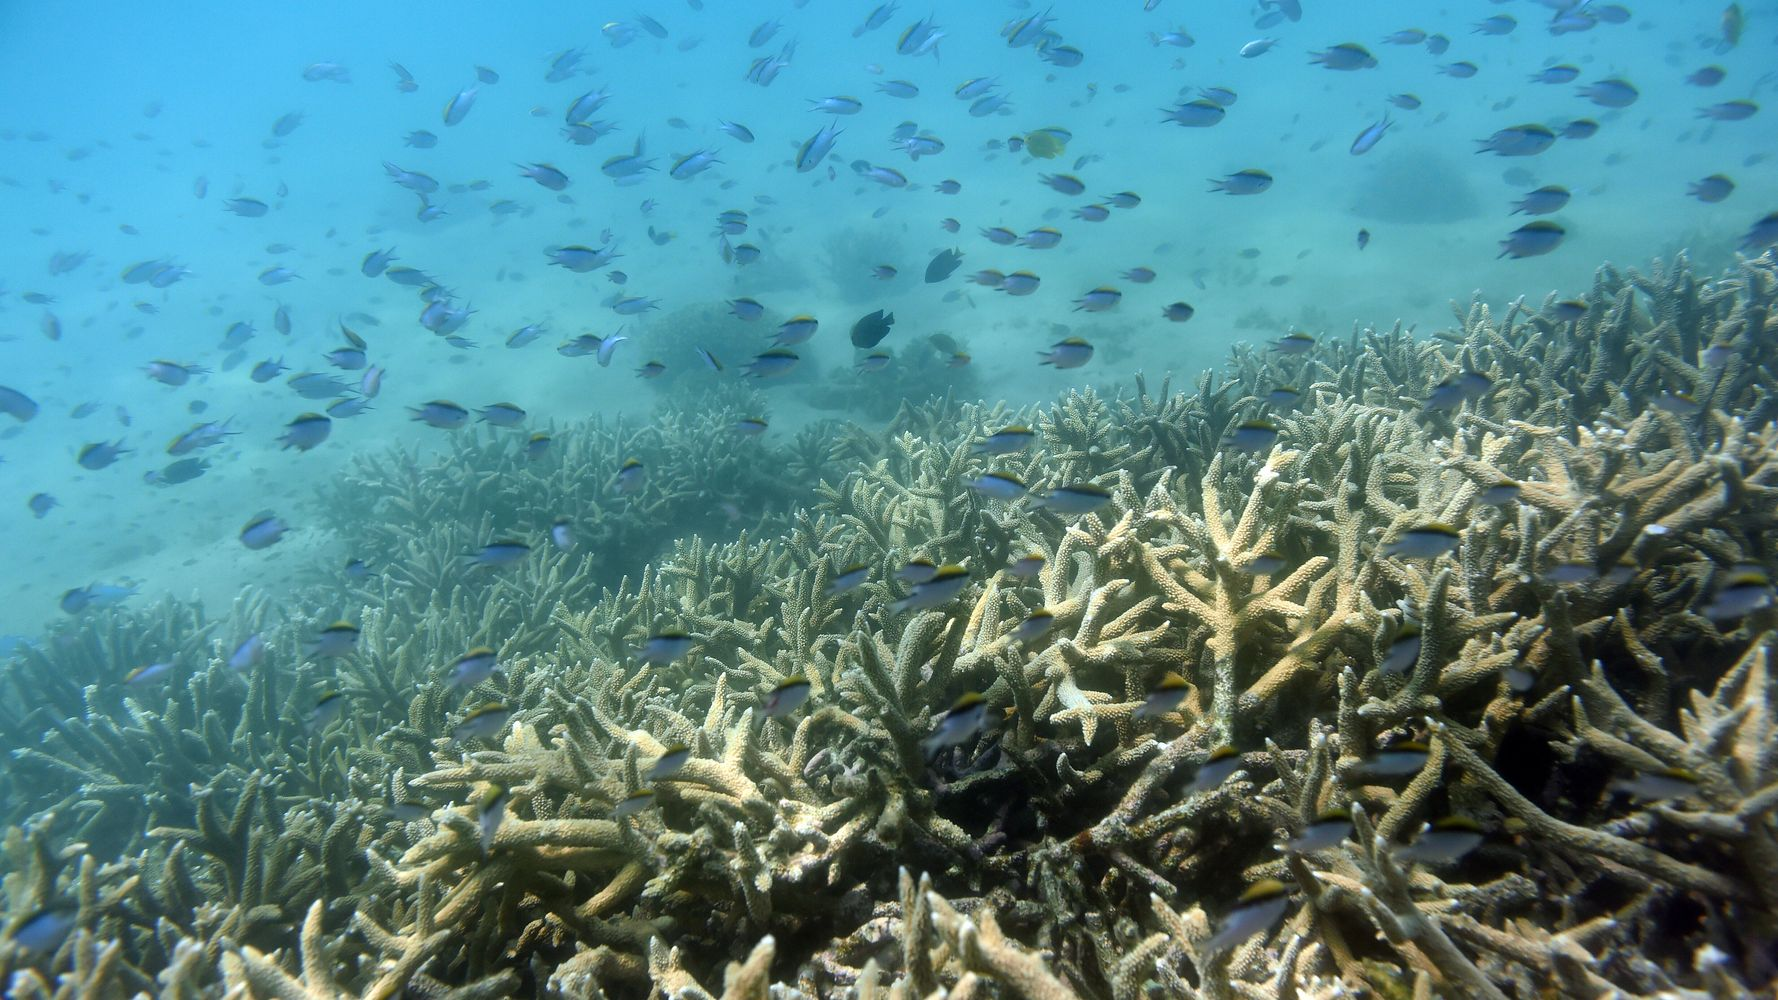 Australia's Great Barrier Reef Suffers Its Most Extensive Coral Bleaching Event